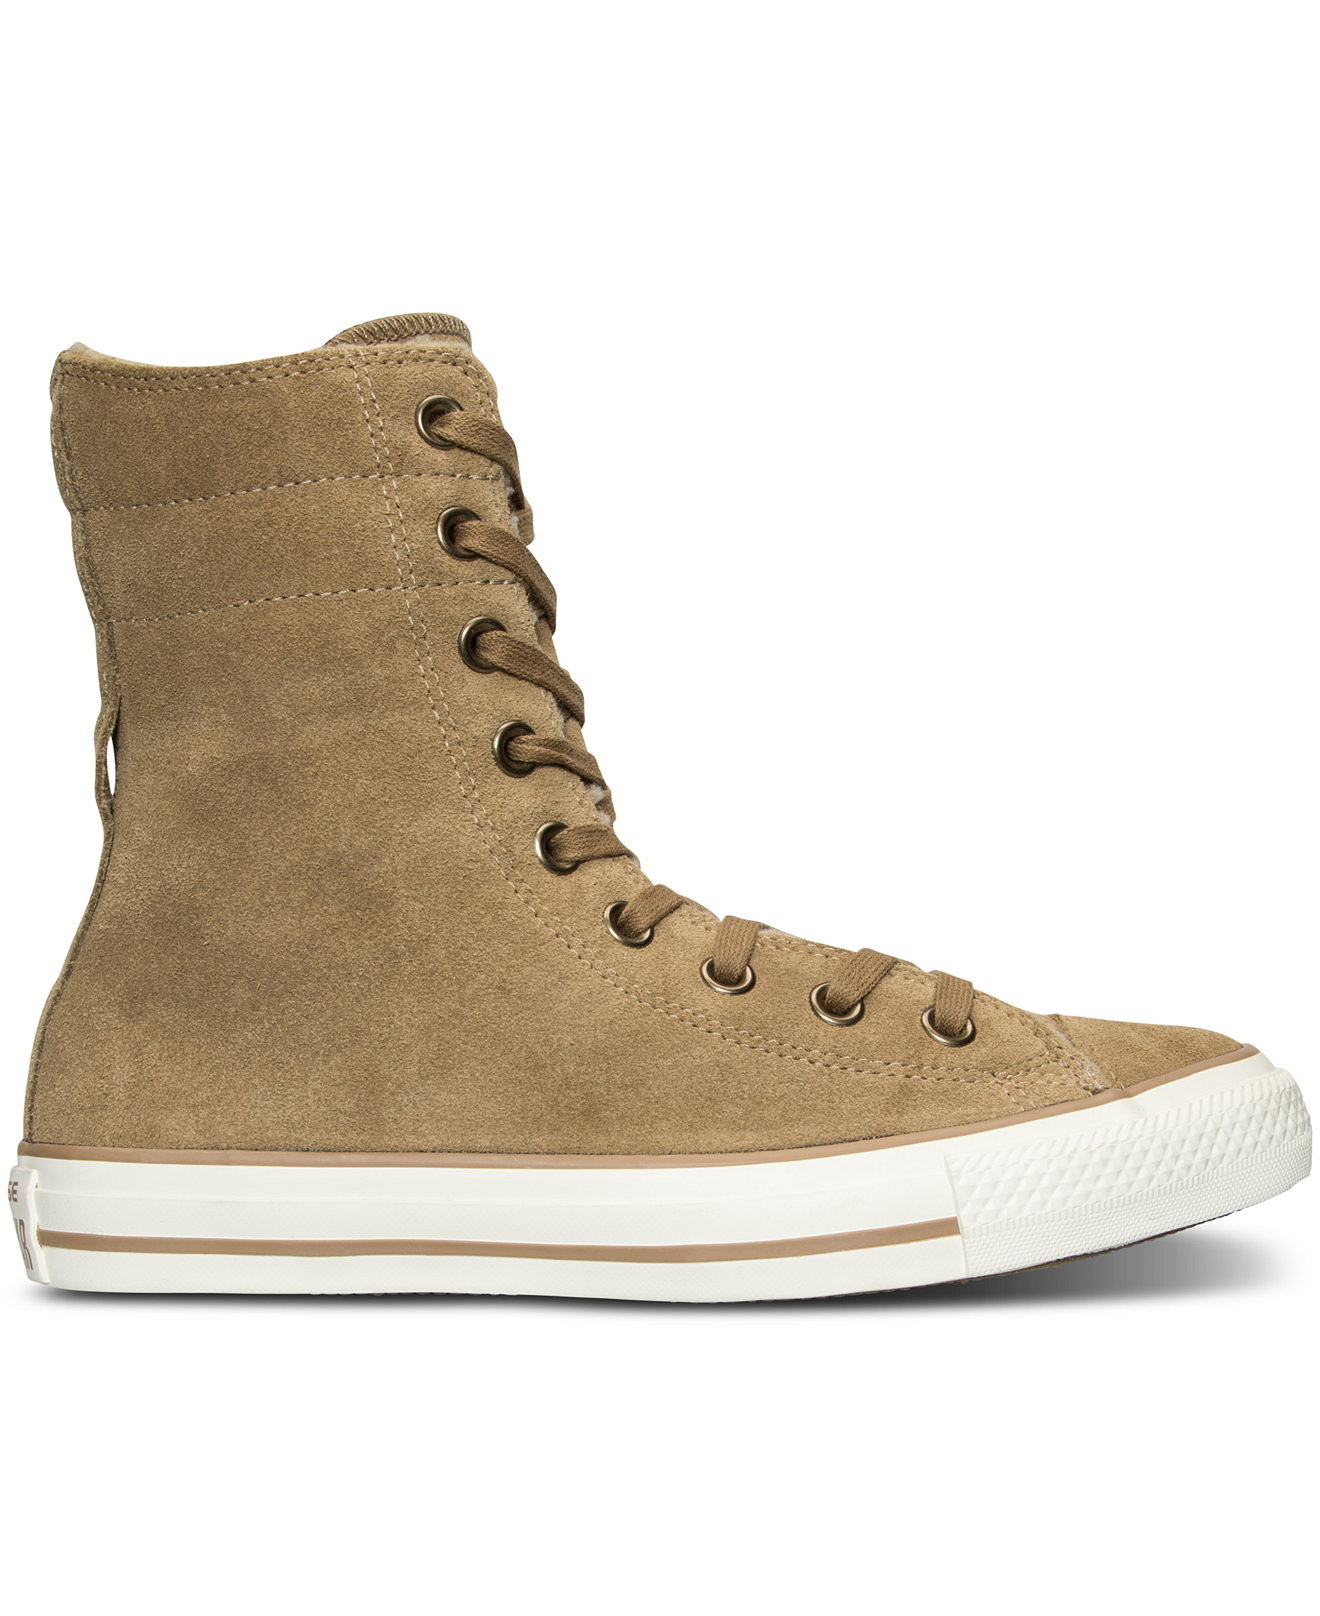 Converse All Star Hi Suede Shearling chaussures beige